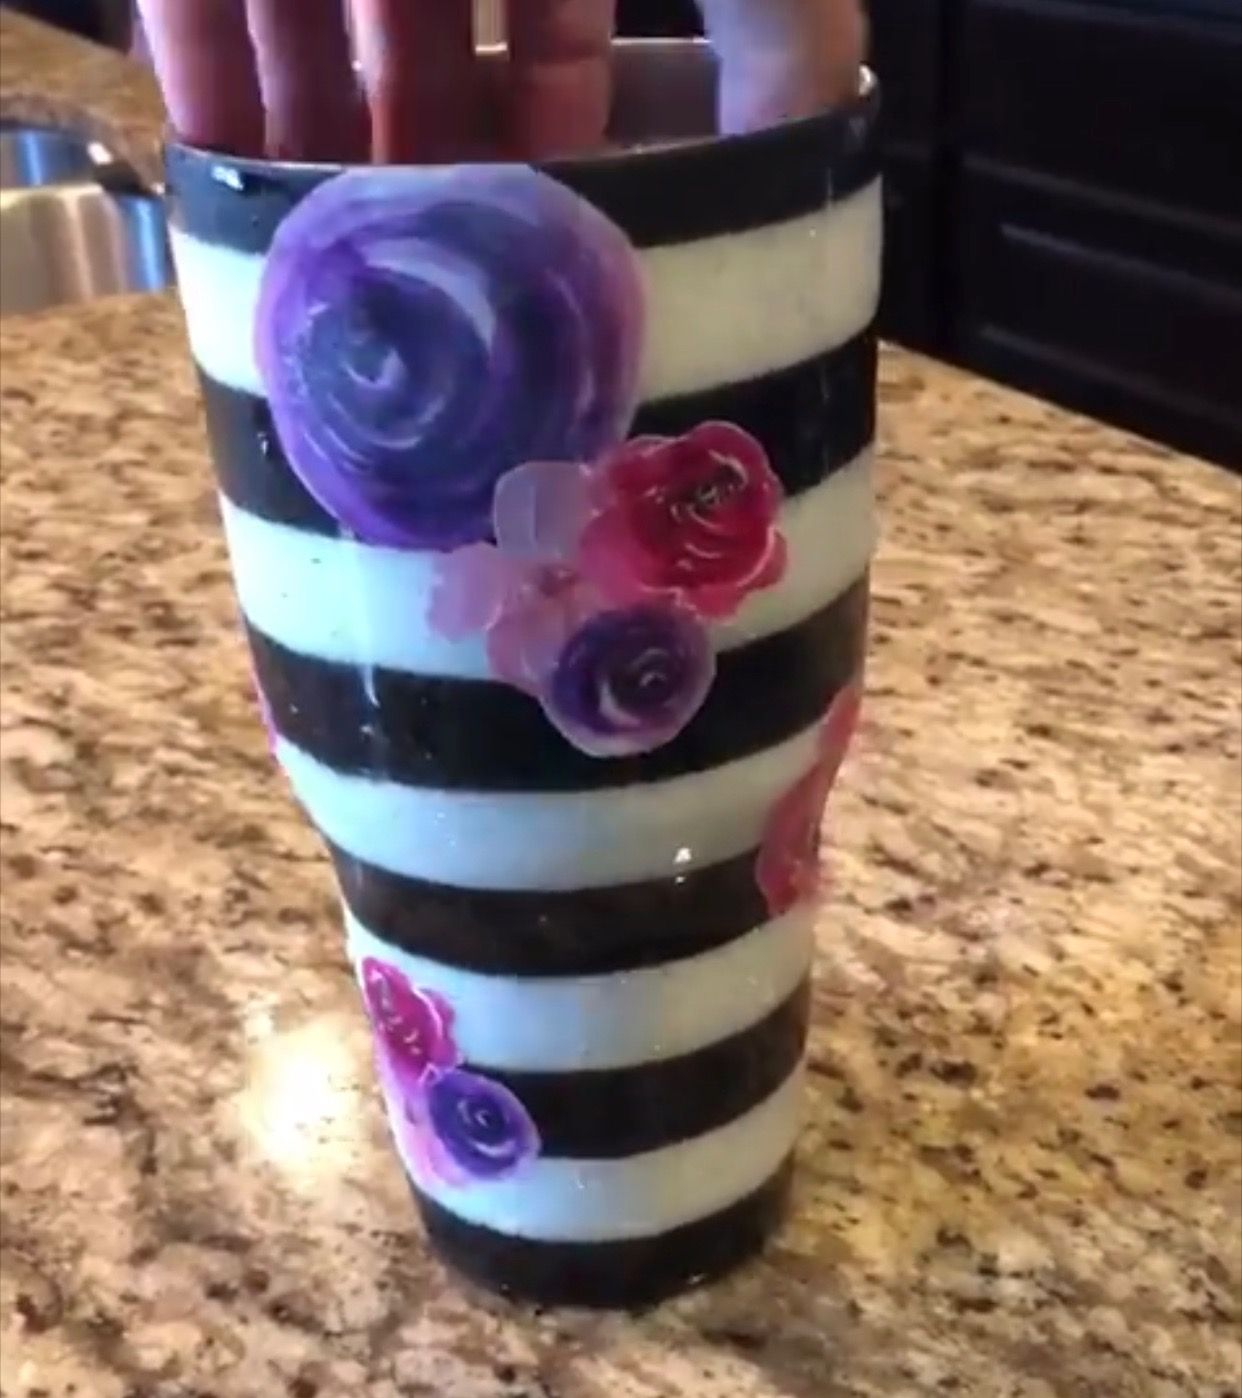 Pin by Krista Smith on Hobbies | Tumbler cups, Diy tumblers